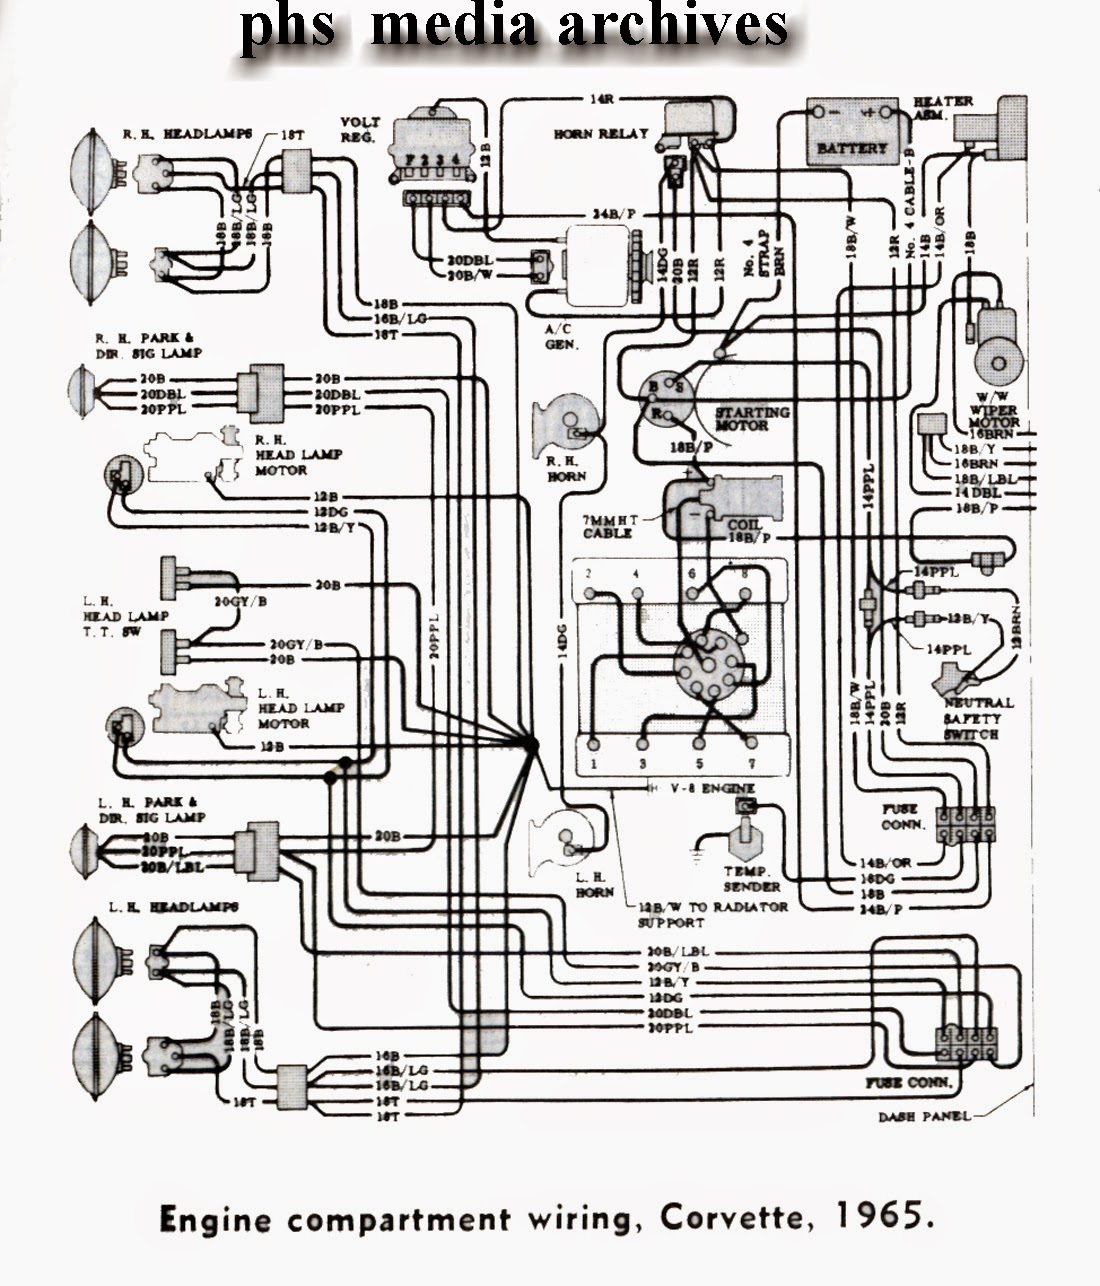 1980 Z28 Wiring Schematic | Electronic Schematics collections  Chevelle Ignition Wiring Diagram on 1969 chevelle connectors, 1969 chevelle exhaust, 1969 chevelle engine, 1969 chevelle coil, 1969 chevelle production numbers, 1969 chevelle door, 1969 chevelle antenna, 1969 chevelle transmission, 1969 chevelle shop manual, 1969 chevelle air cleaner, 1969 chevelle rear window trim, 1969 chevelle suspension, 1969 chevelle serial number, 1969 chevelle ignition, 1969 chevelle turn signals, 1969 chevelle alternator wiring, 1969 chevelle super sport, 1969 chevelle heater wiring, 1969 chevelle steering column diagram, 1969 chevelle paint codes,